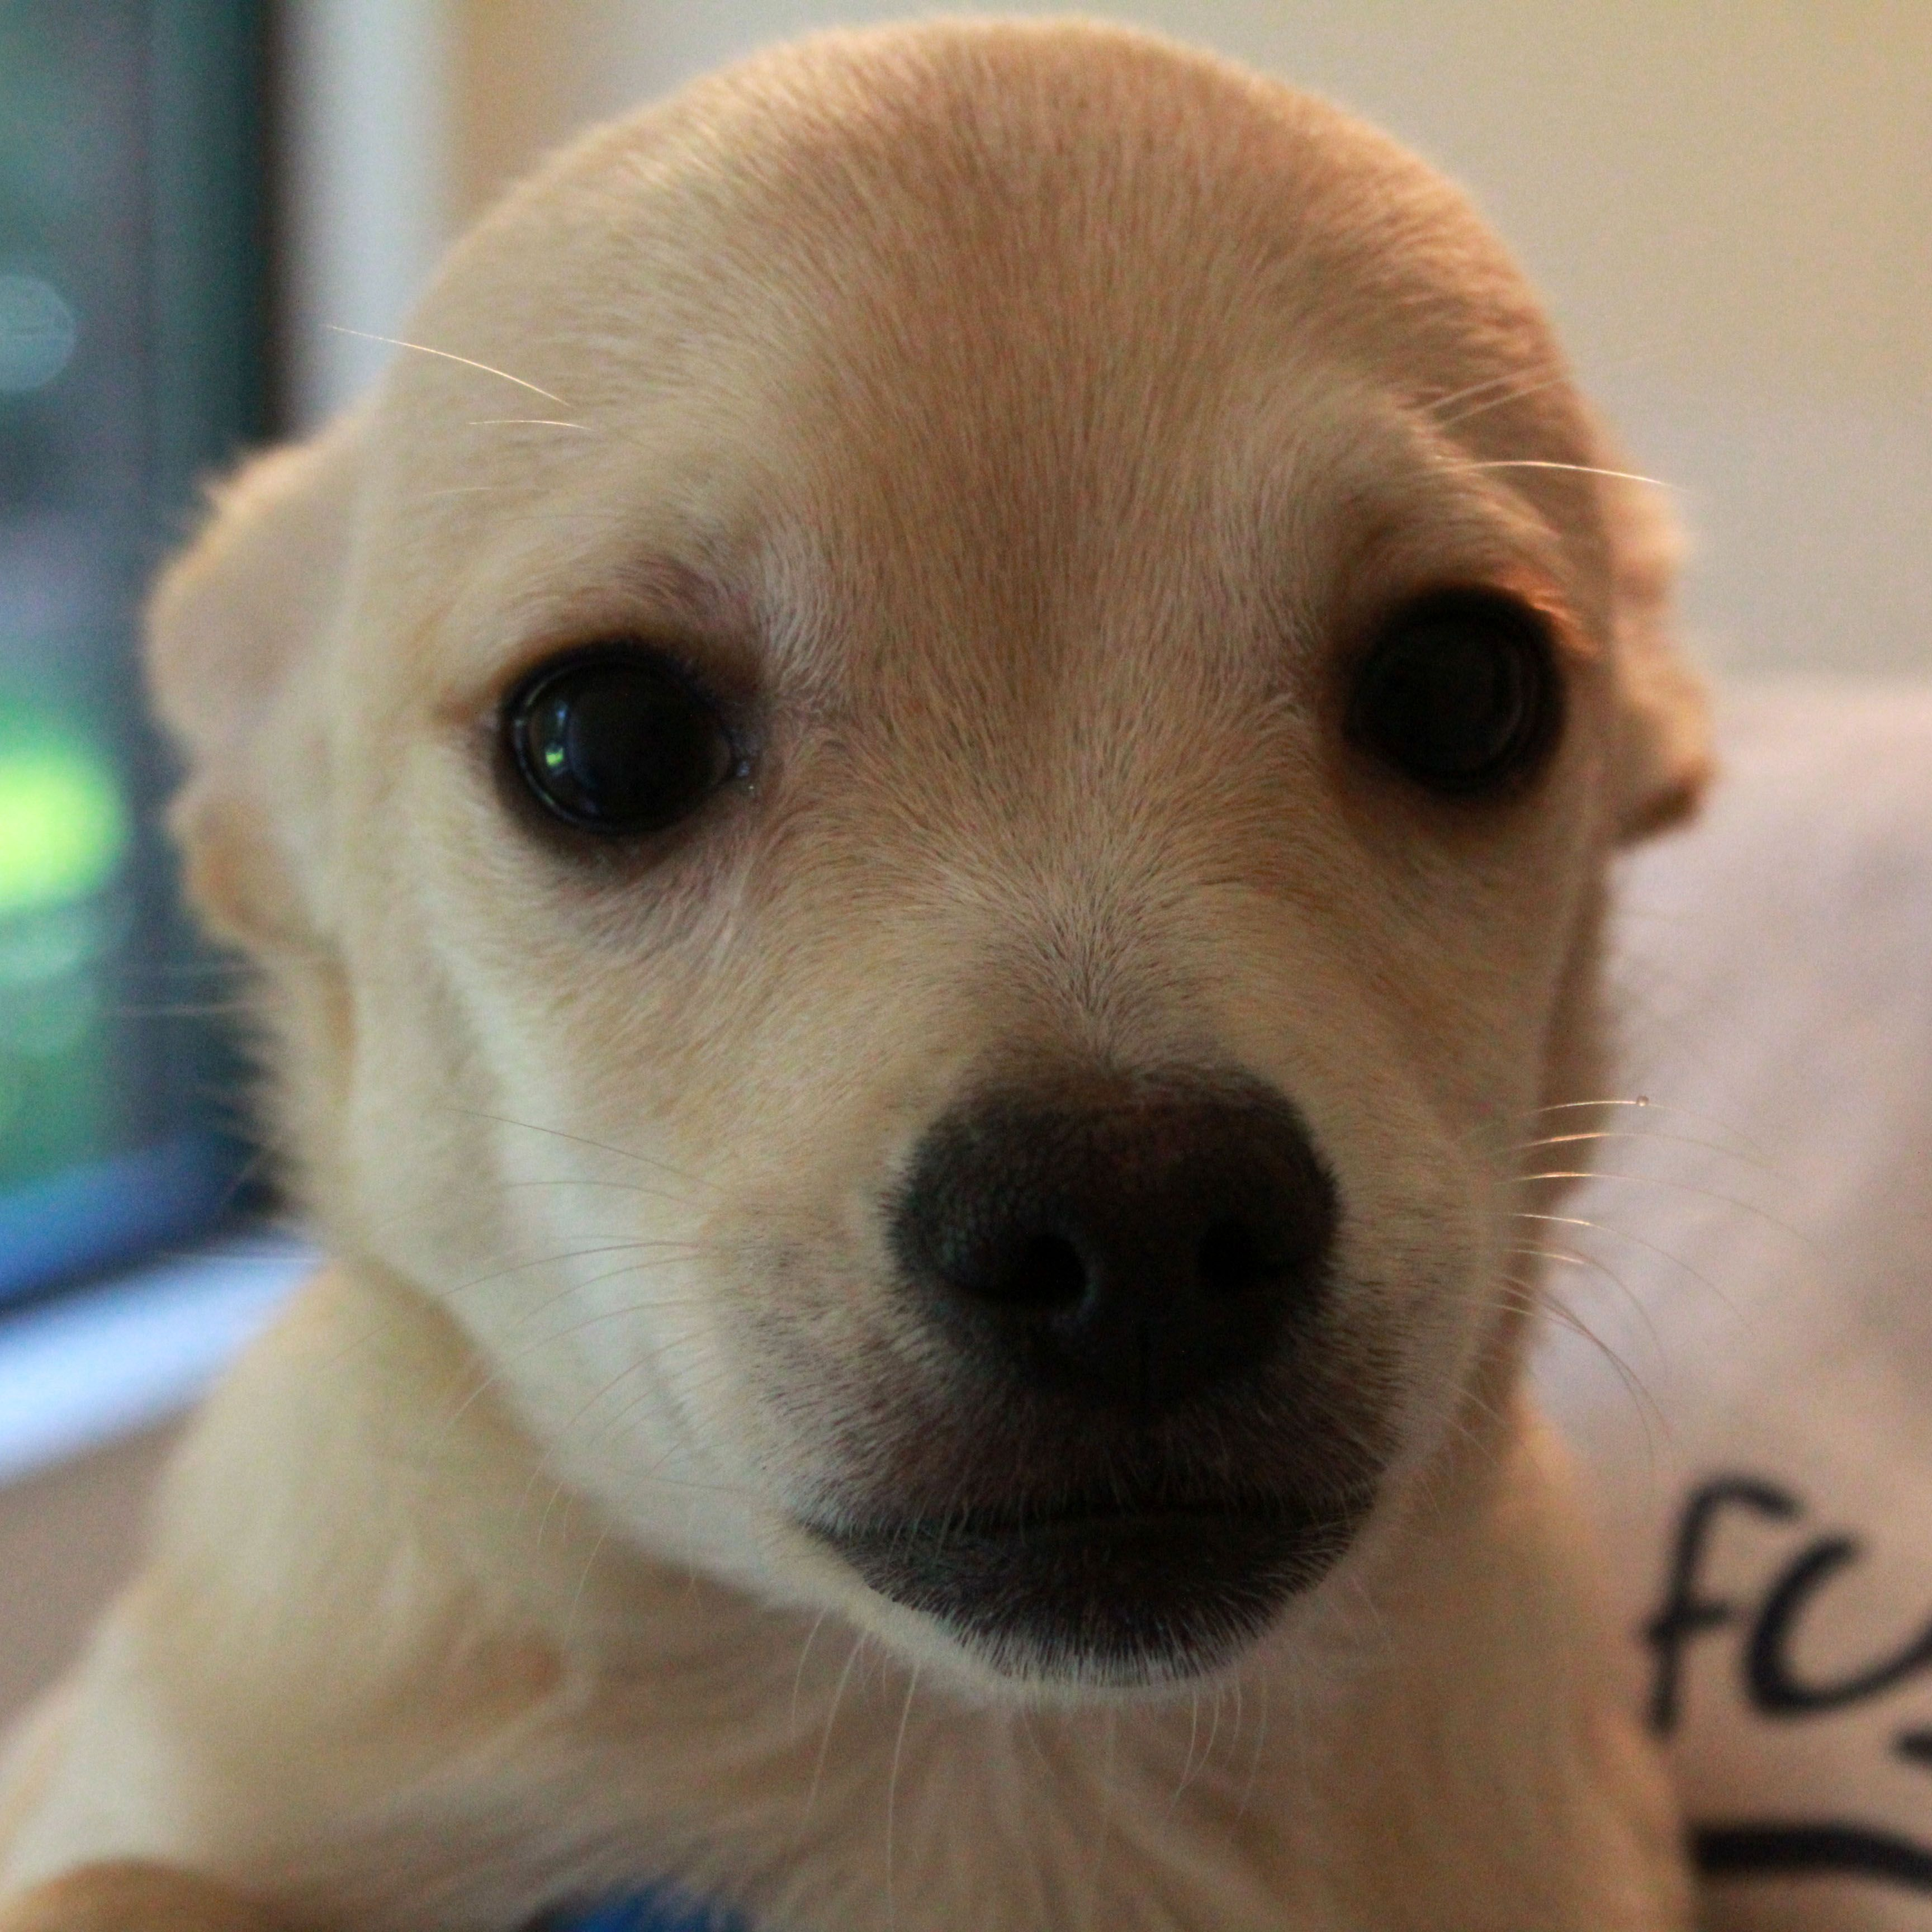 Chihuahua Dog For Adoption In Waco Tx Adn 660344 On Puppyfinder Com Gender Male Age Baby Chihuahua Dogs Dog Adoption Dogs